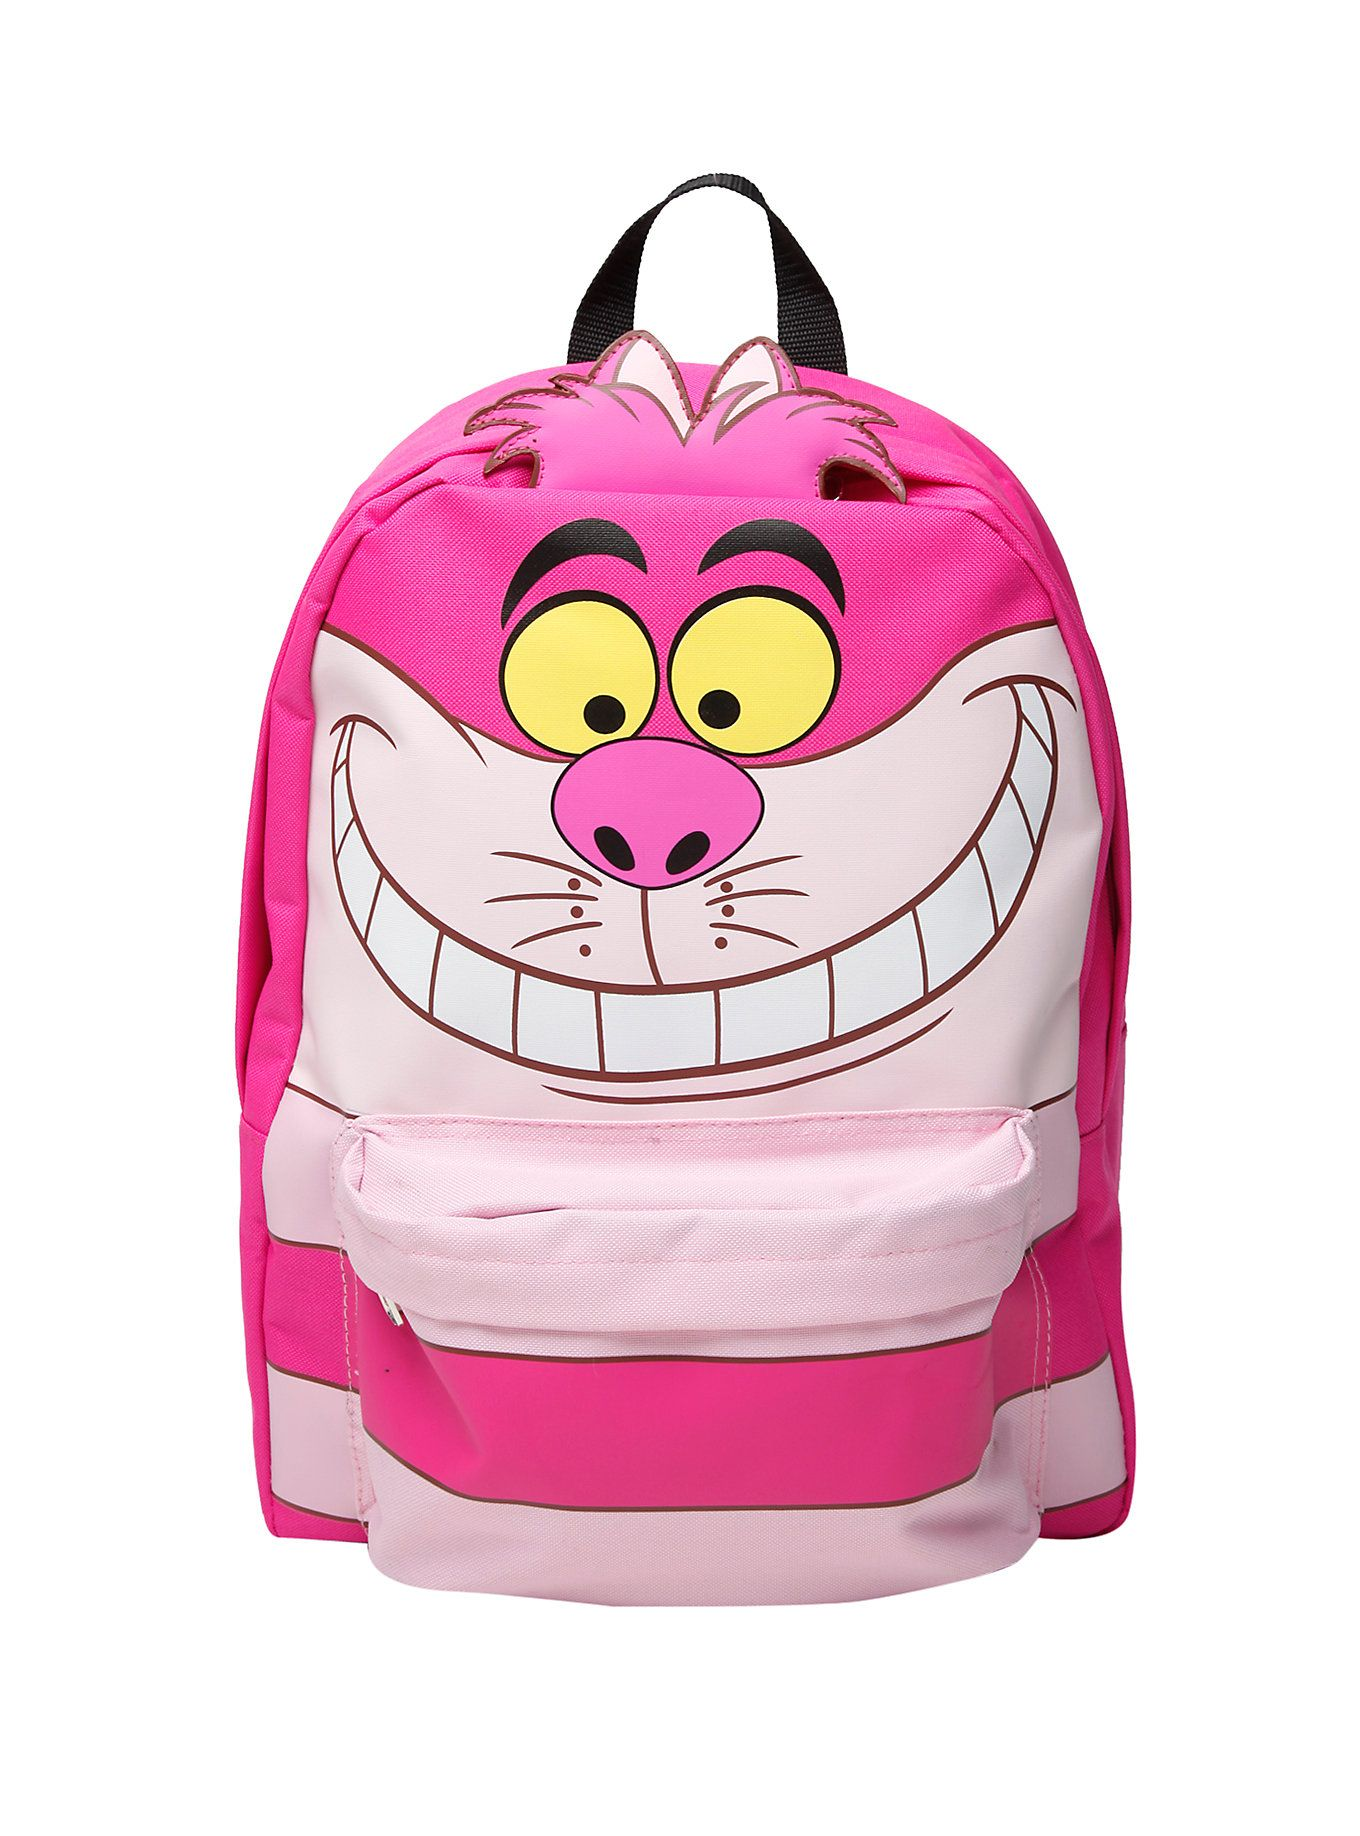 f877f10a41 Disney Alice In Wonderland Cheshire Cat Backpack